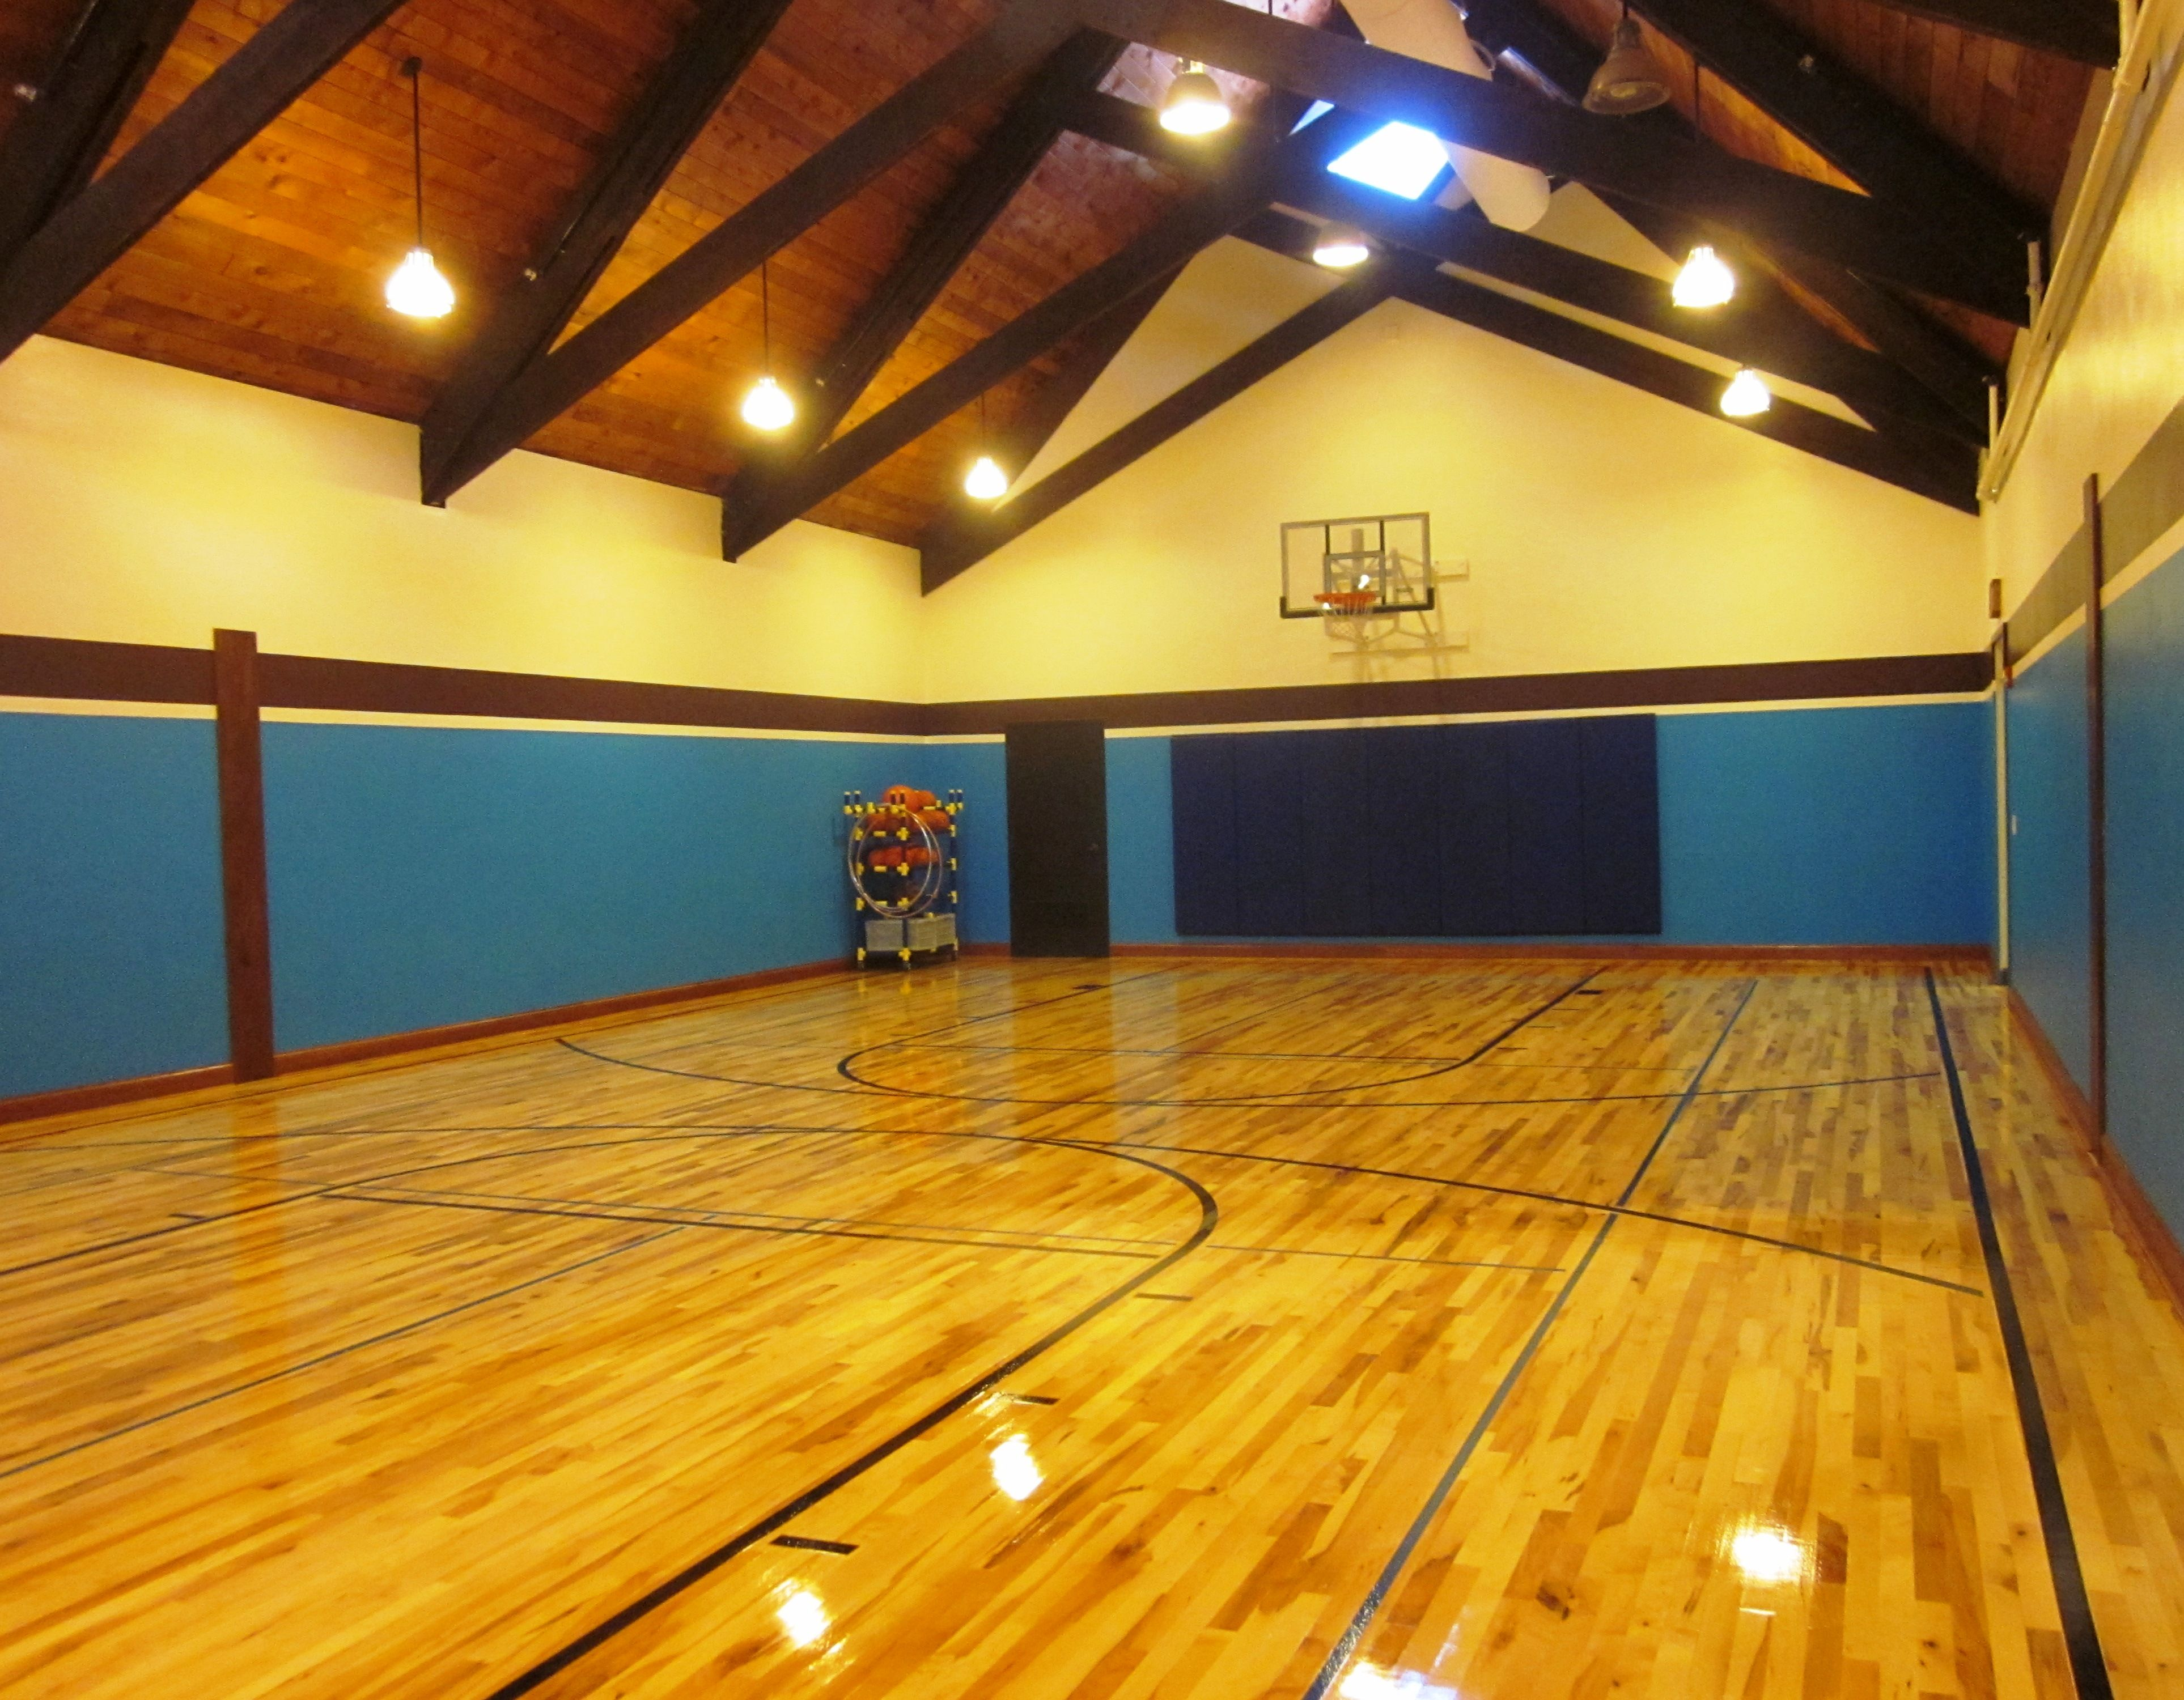 Killer Basketball Courts